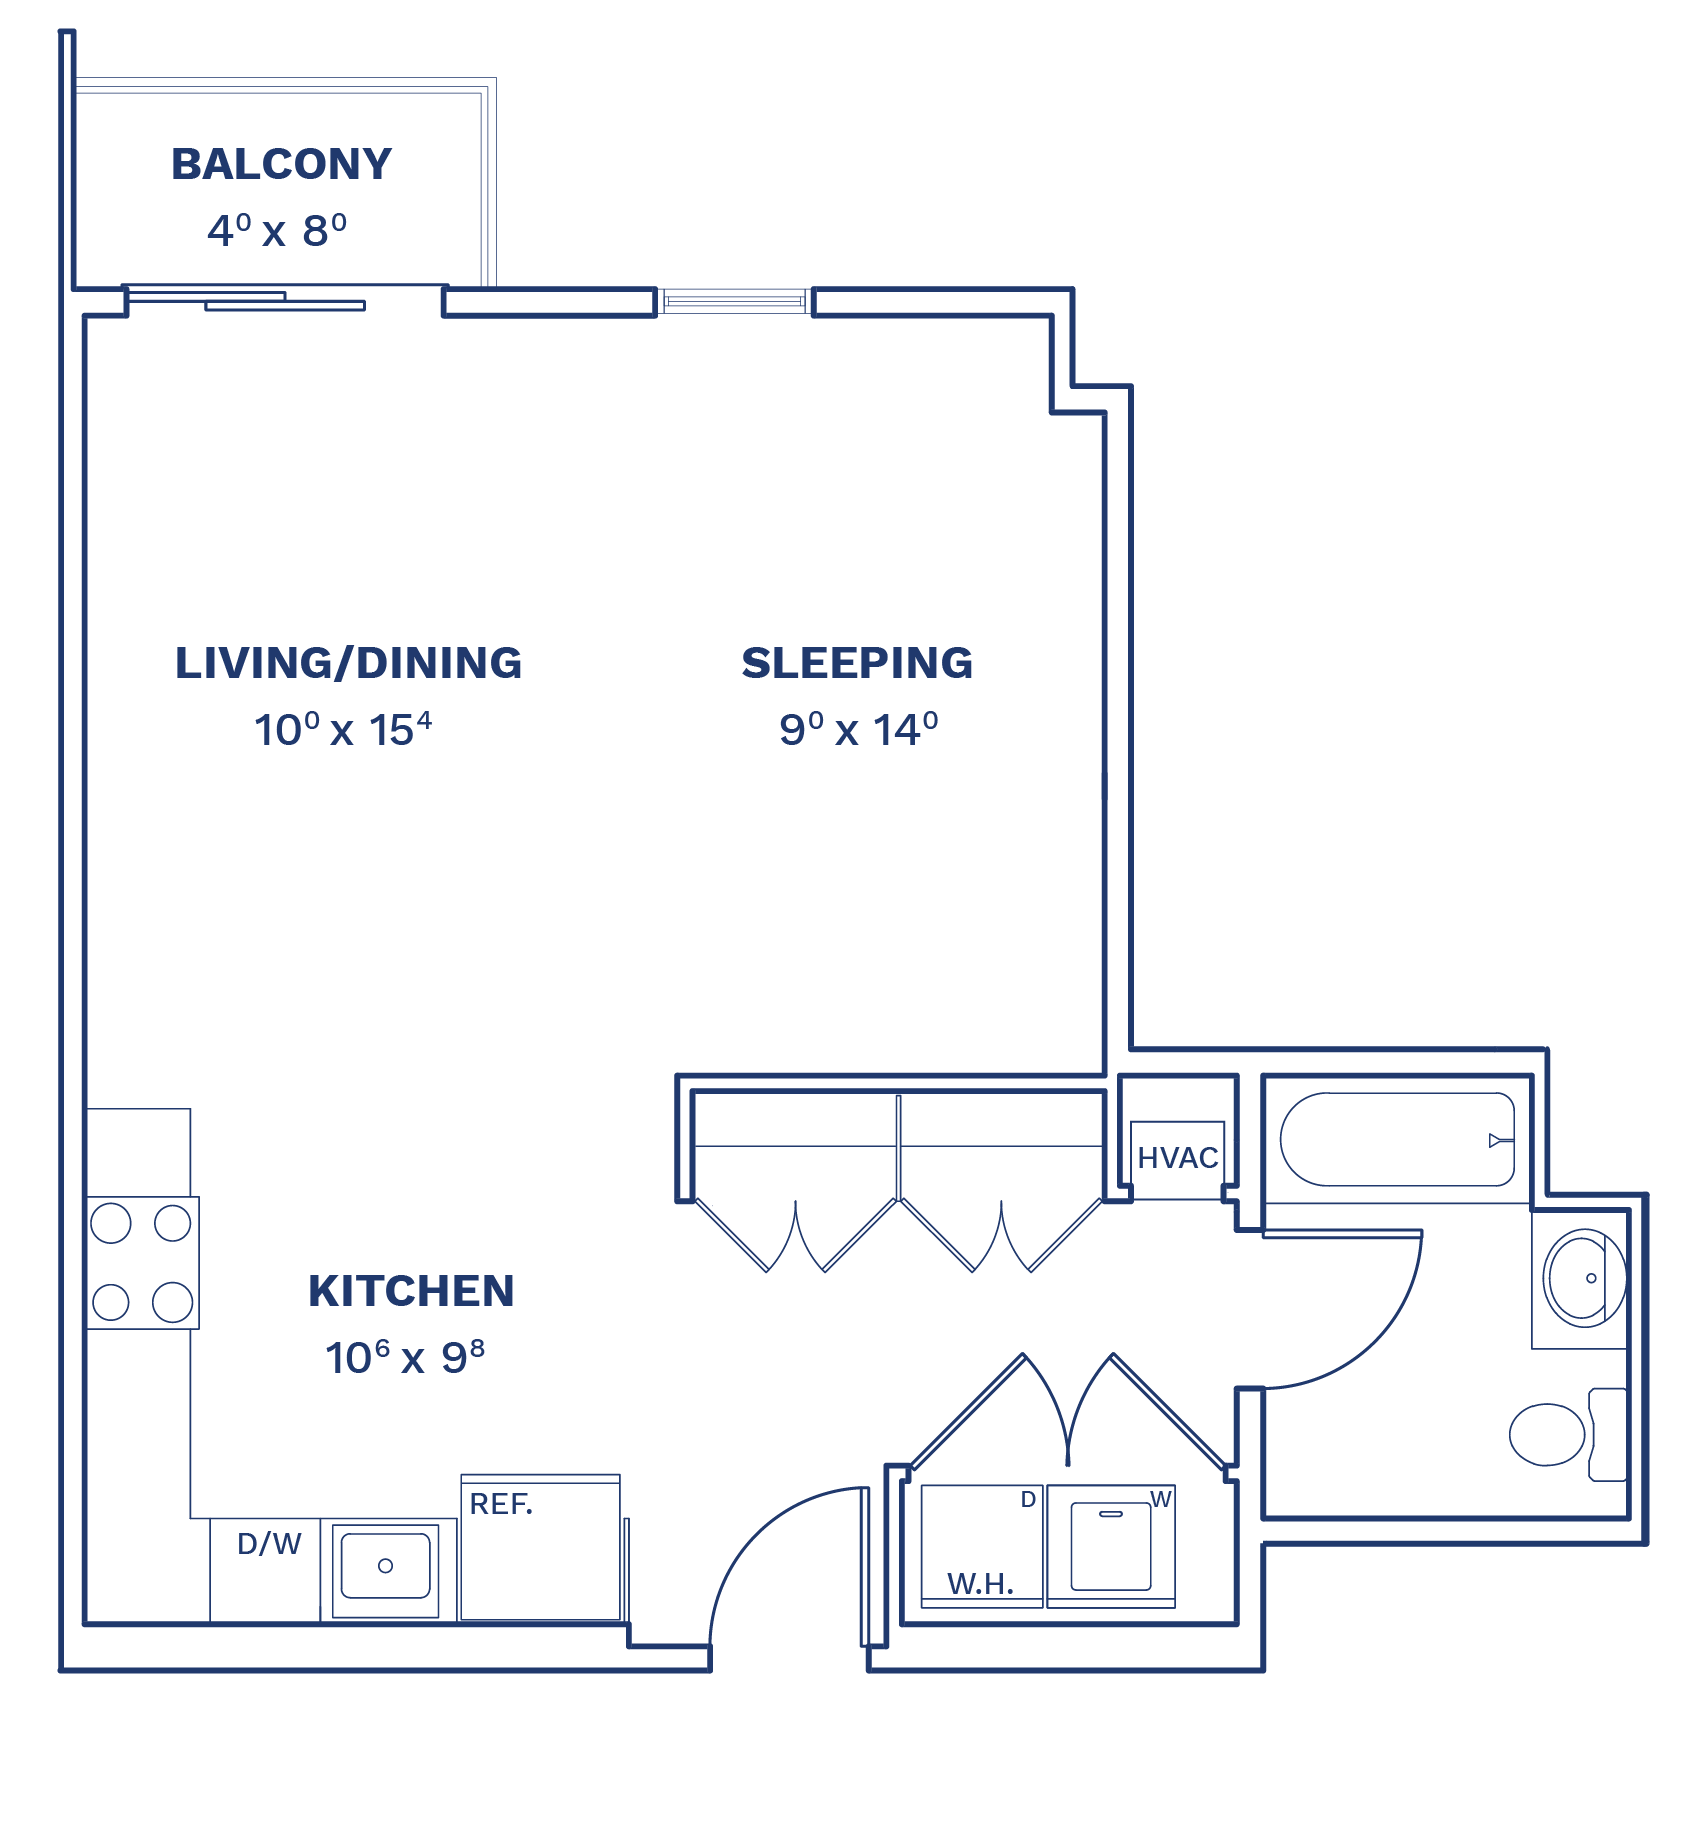 Floorplan of Unit S7